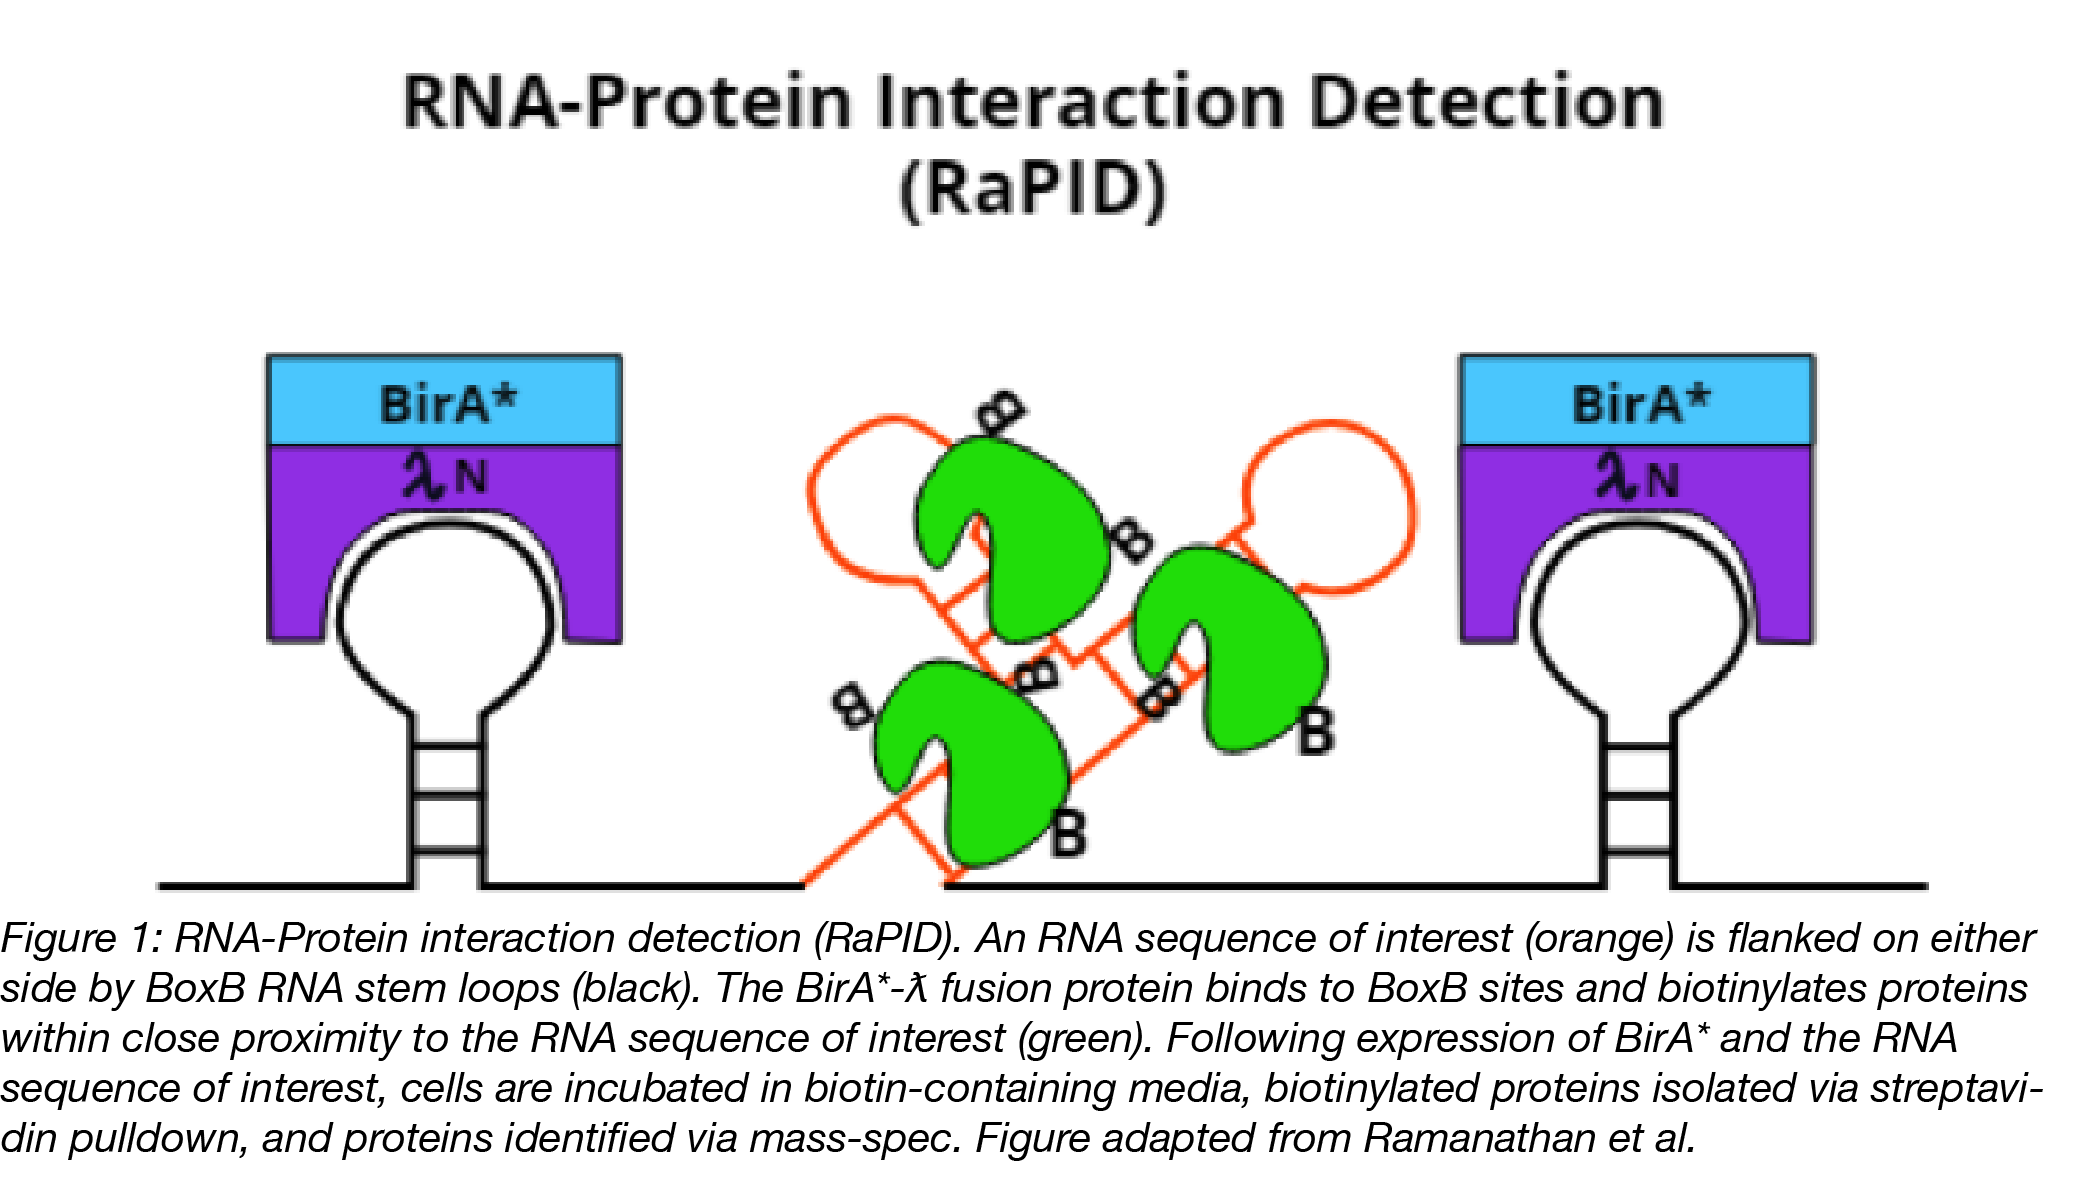 RNA-Protein Interaction Detection (RaPID) diagram